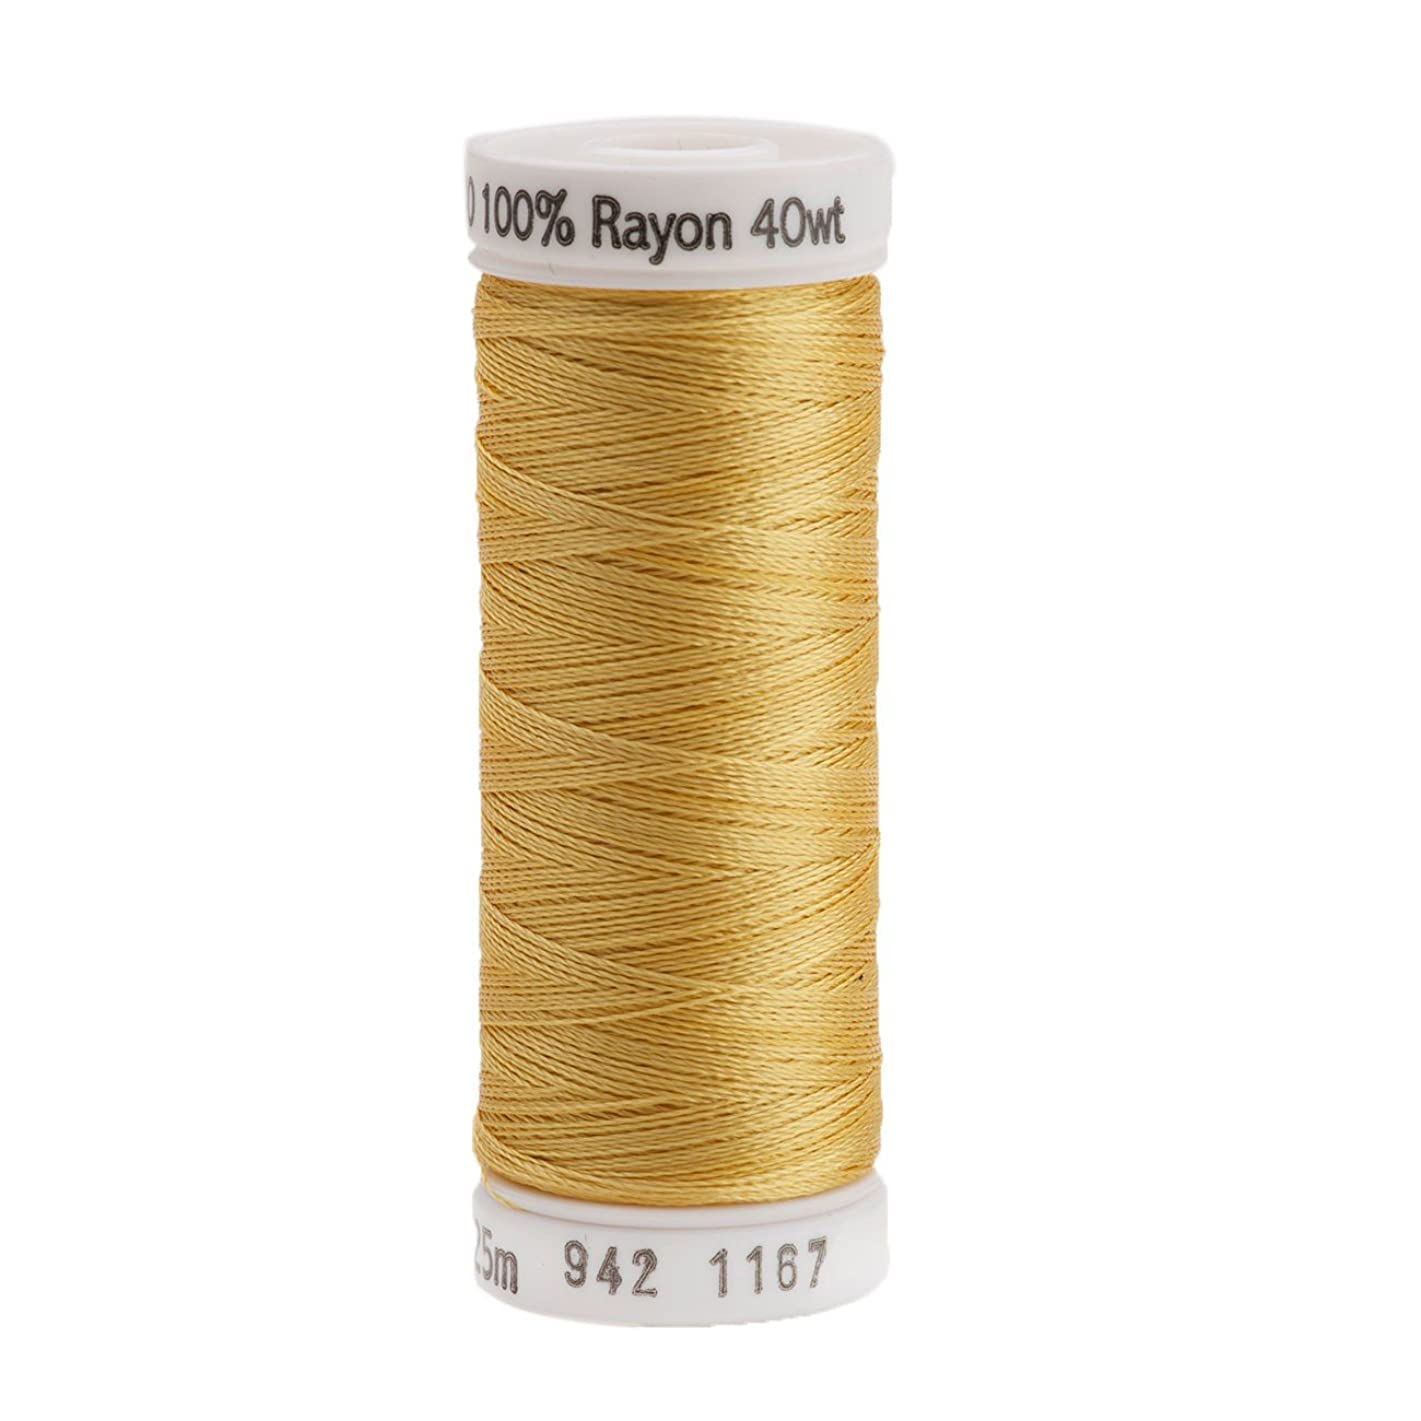 Sulky Rayon Thread for Sewing, 250-Yard, Maize Yellow